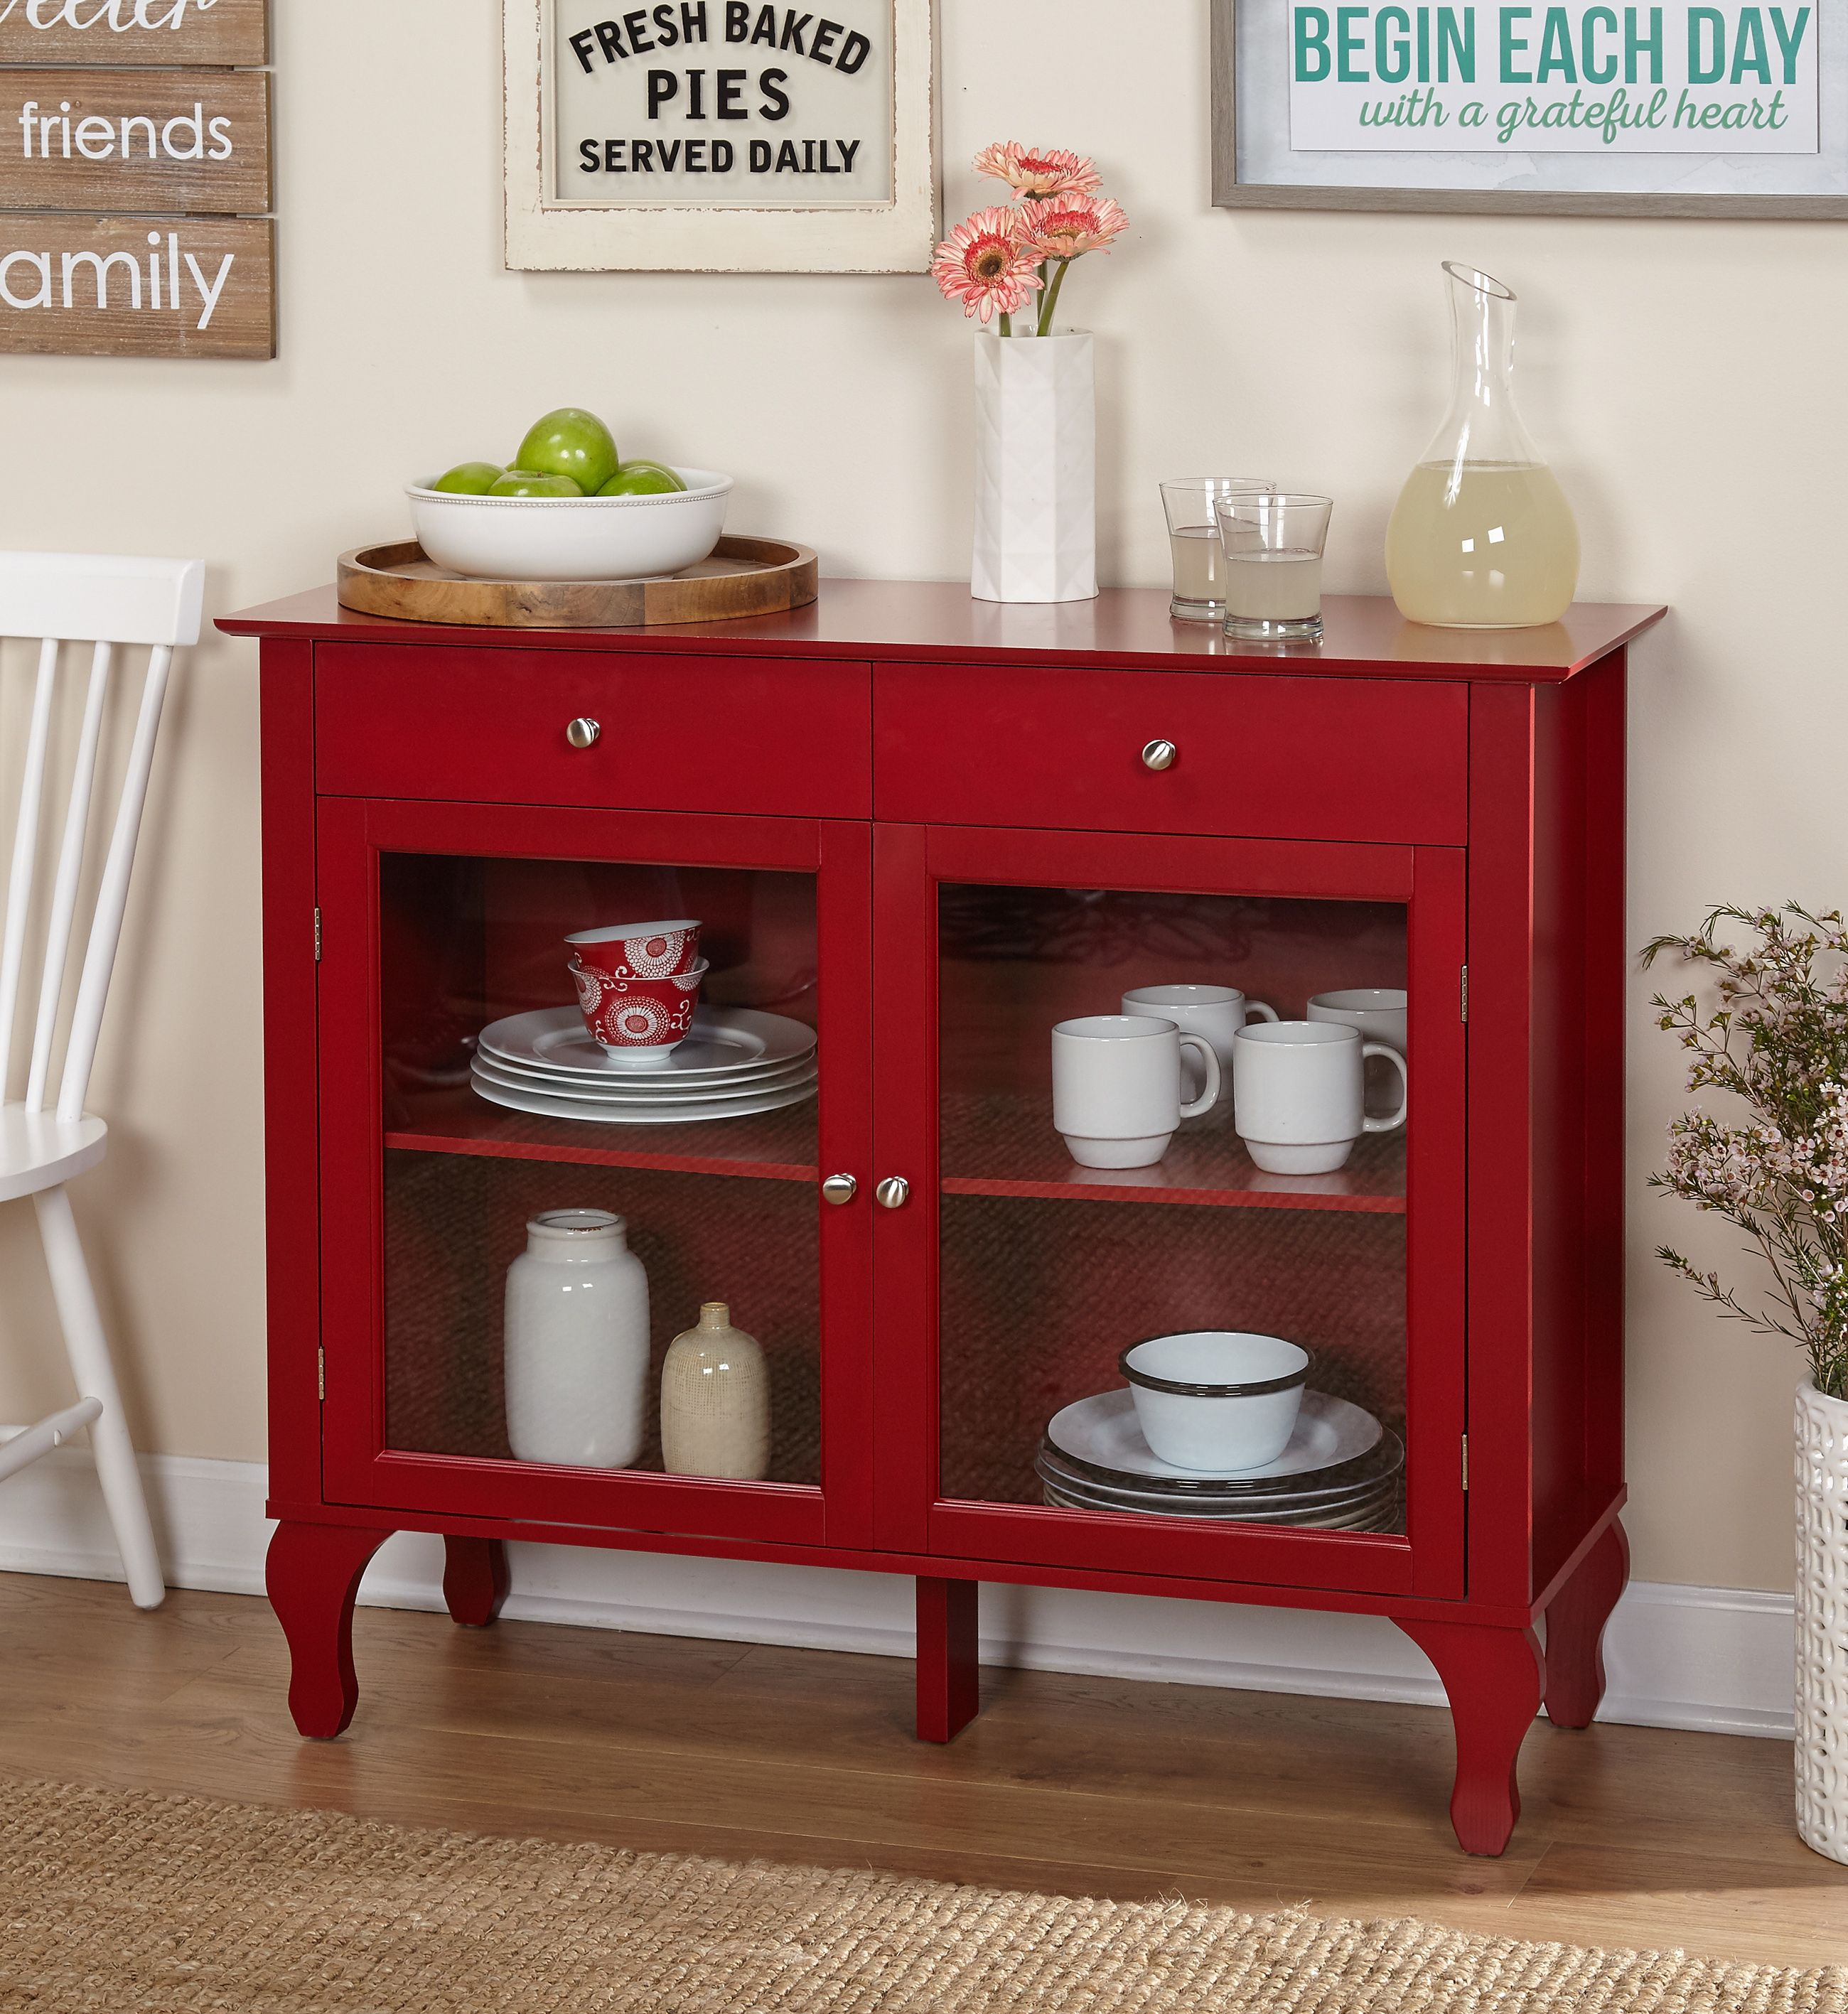 Tms Layla 2 Drawer Buffet Cabinet Multiple Colors Walmart Com In 2020 Red Buffet Dining Room Storage Cabinet Furniture